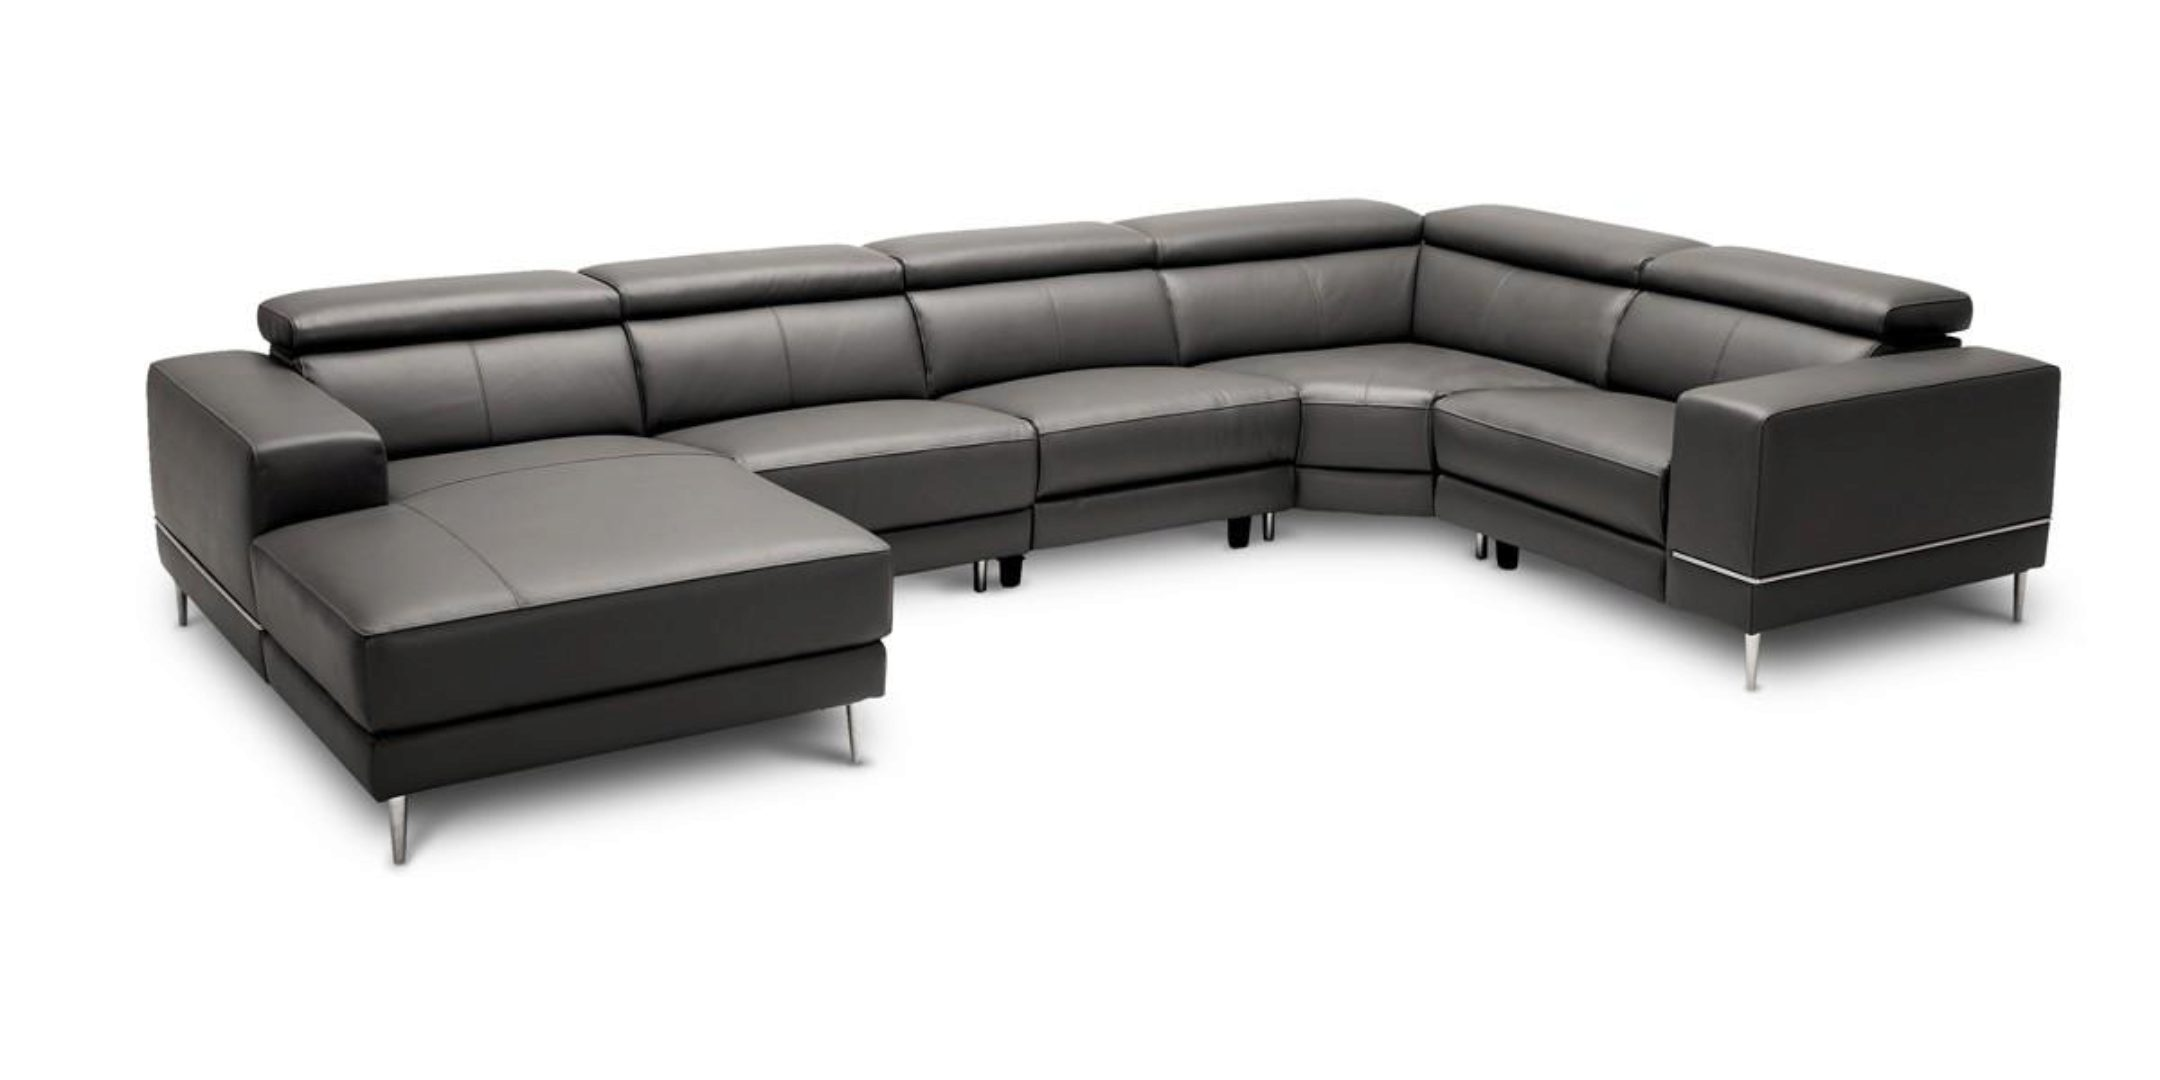 Picture of: Dark Grey Leather Sectional Sofa W 2 Electric Recliners Vig Divani Casa Wade Vgkmkm 5381h M1215 Nocon